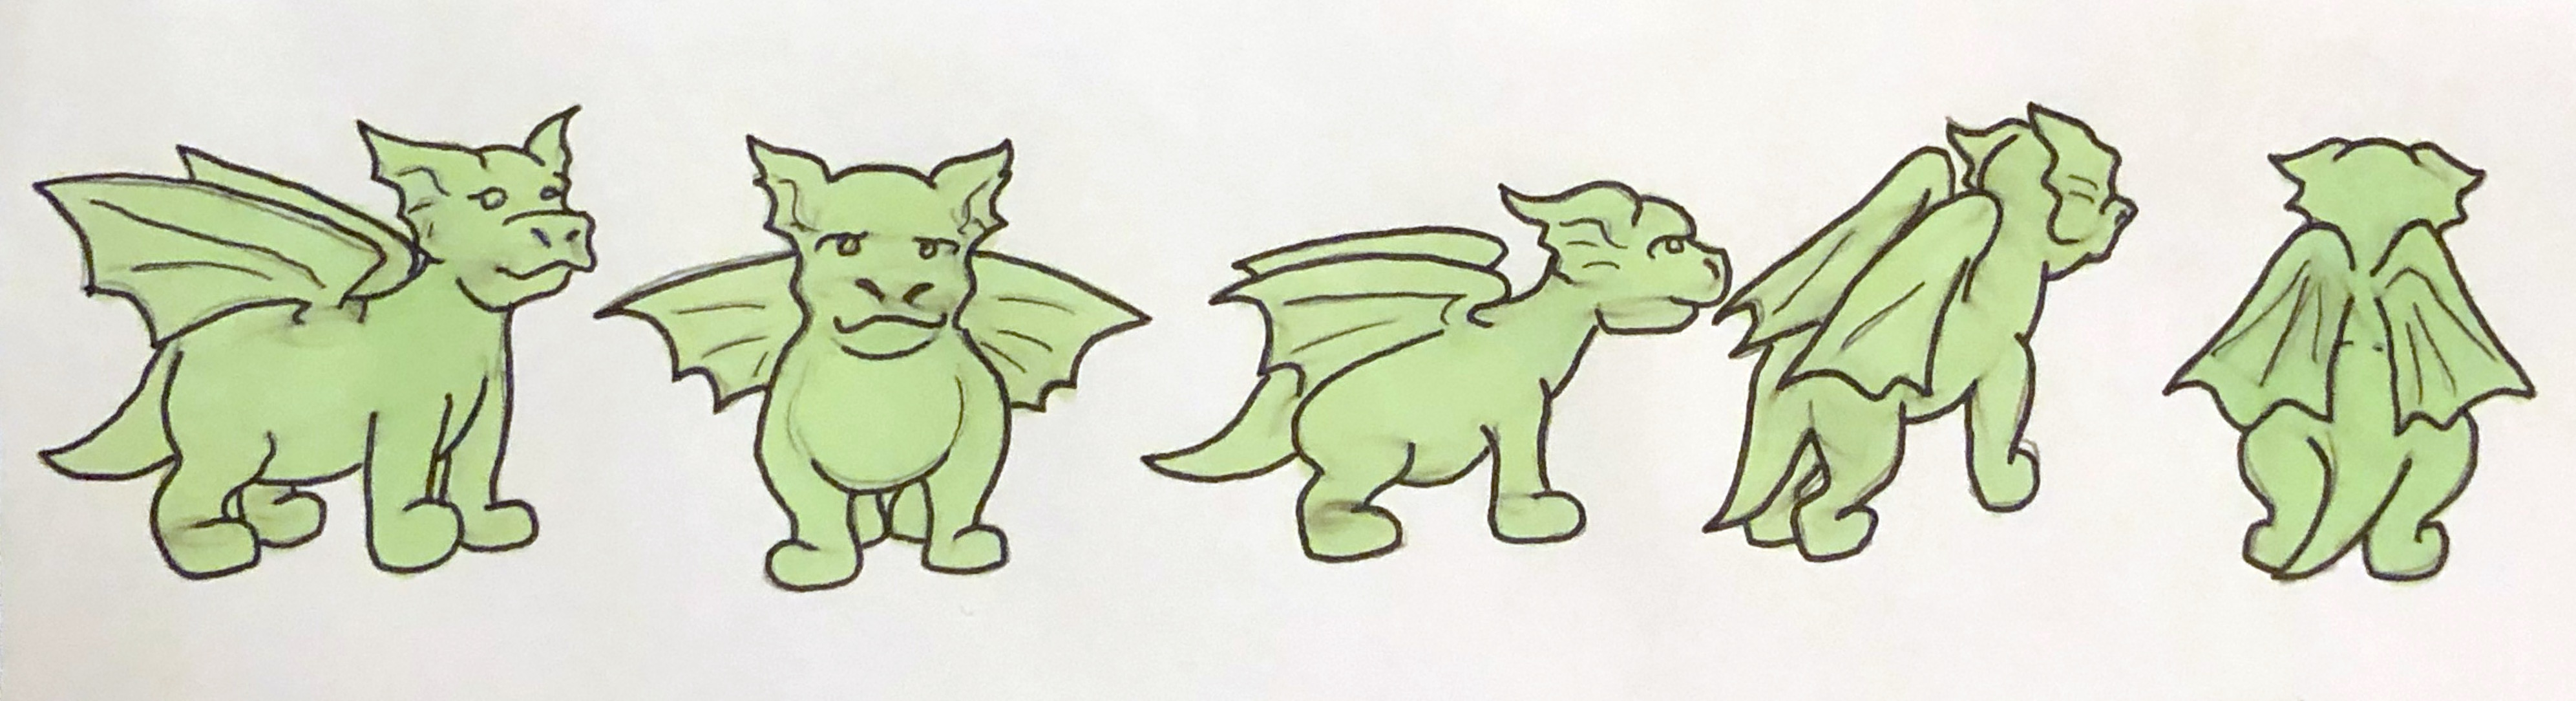 Character turnaround (Dragon)